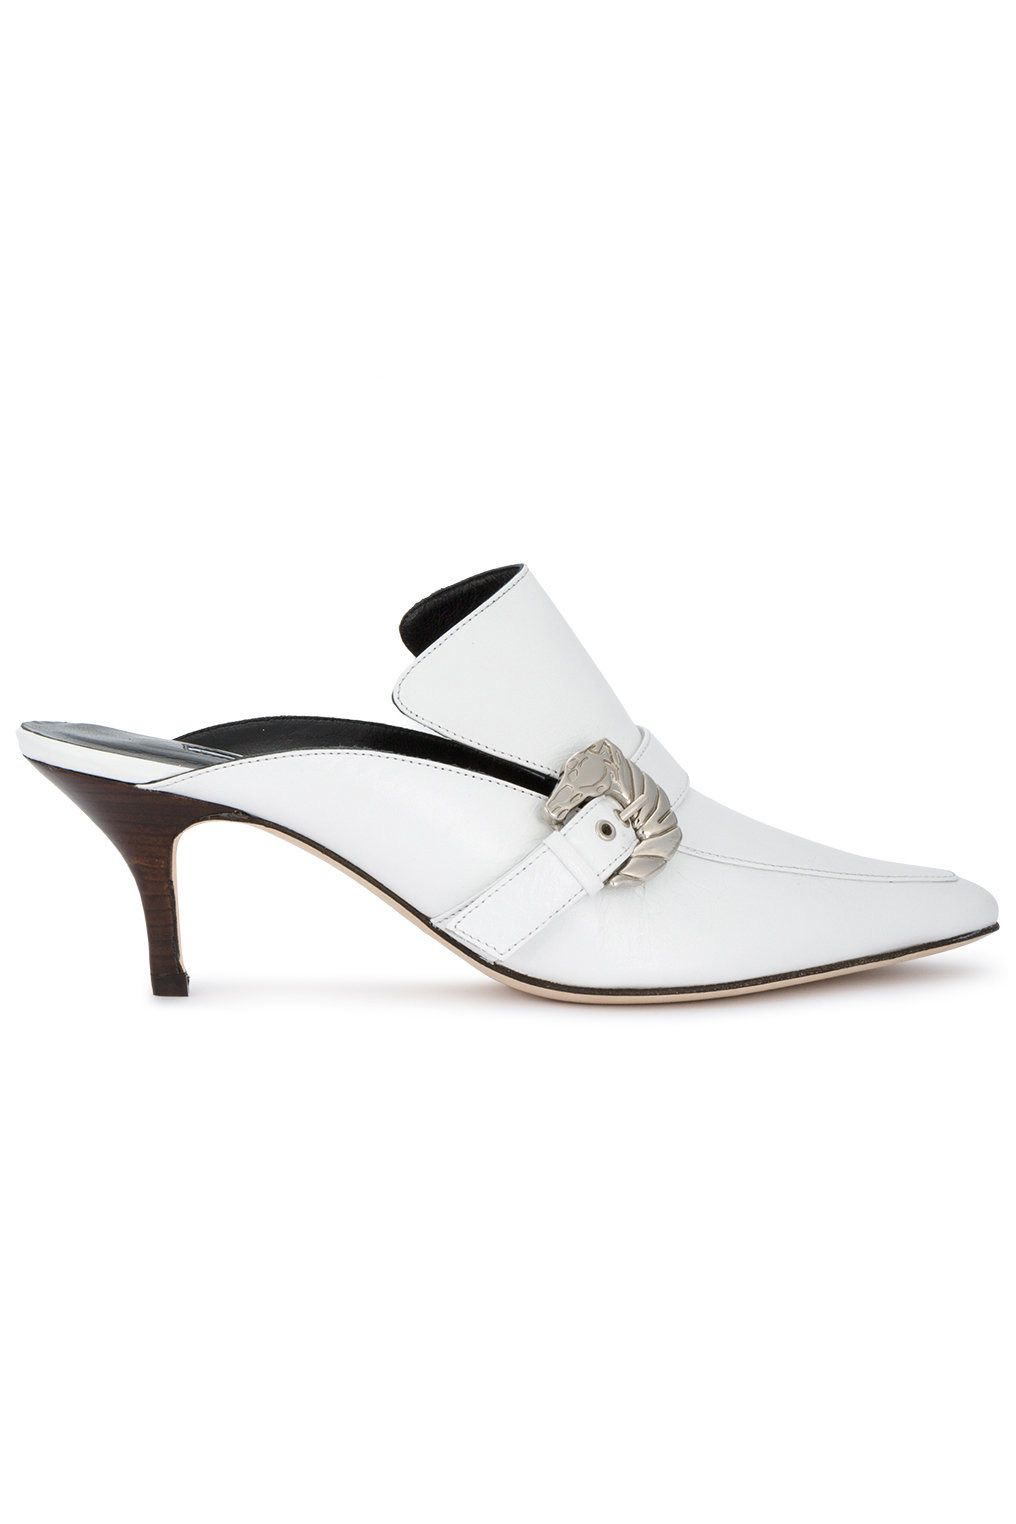 """<p>Low-heeled mules are easy to kick off when you're sitting shotgun and add a chic touch to any pitstop.</p><p><em data-redactor-tag=""""em"""" data-verified=""""redactor"""">Dorateymur Cabriolet Mules, $726; </em><a href=""""https://www.farfetch.com/ca/shopping/women/dorateymur-cabriolet-mules--item-12196890.aspx?utm_source=shopstyle&utm_medium=affiliate&utm_campaign=PHCA&utm_term=CANetwork"""" target=""""_blank"""" data-tracking-id=""""recirc-text-link""""><em data-redactor-tag=""""em"""" data-verified=""""redactor"""">farfetch.com</em></a></p>"""